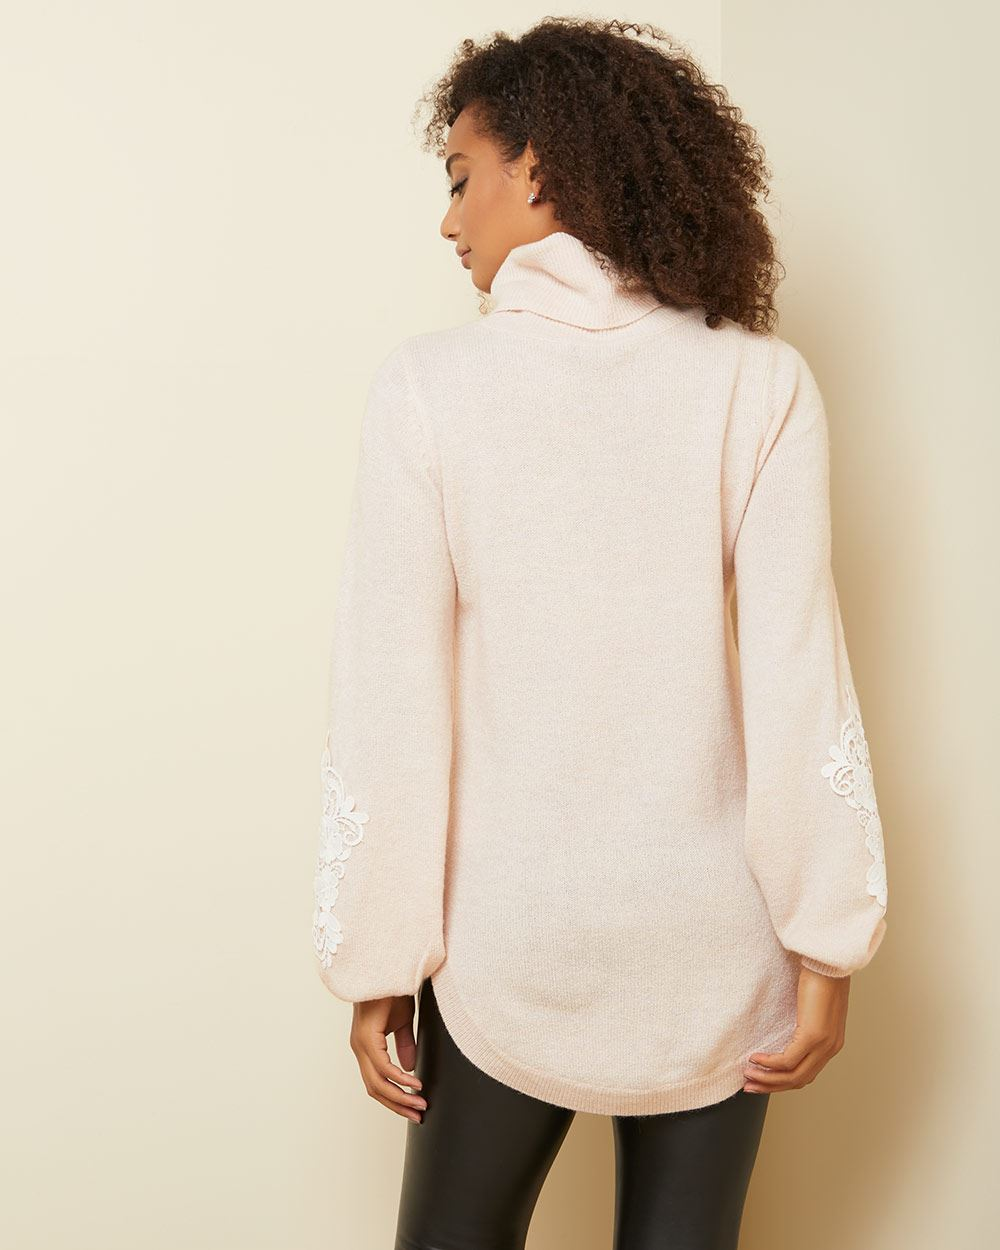 Spongy knit tunic sweater with lace